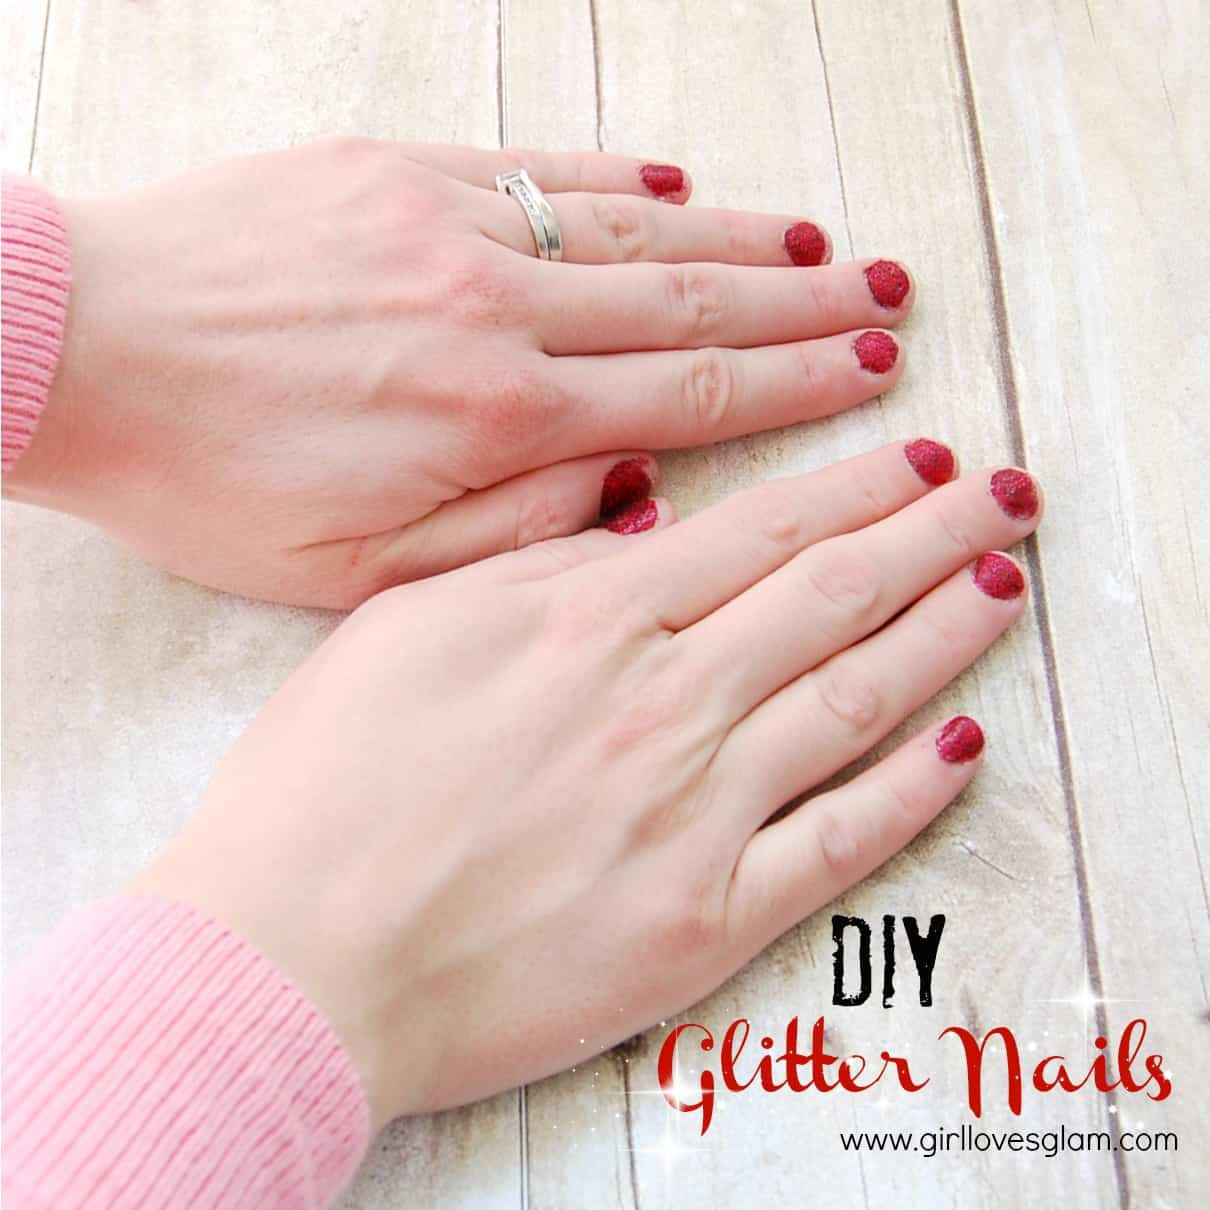 How to do glitter nails at home